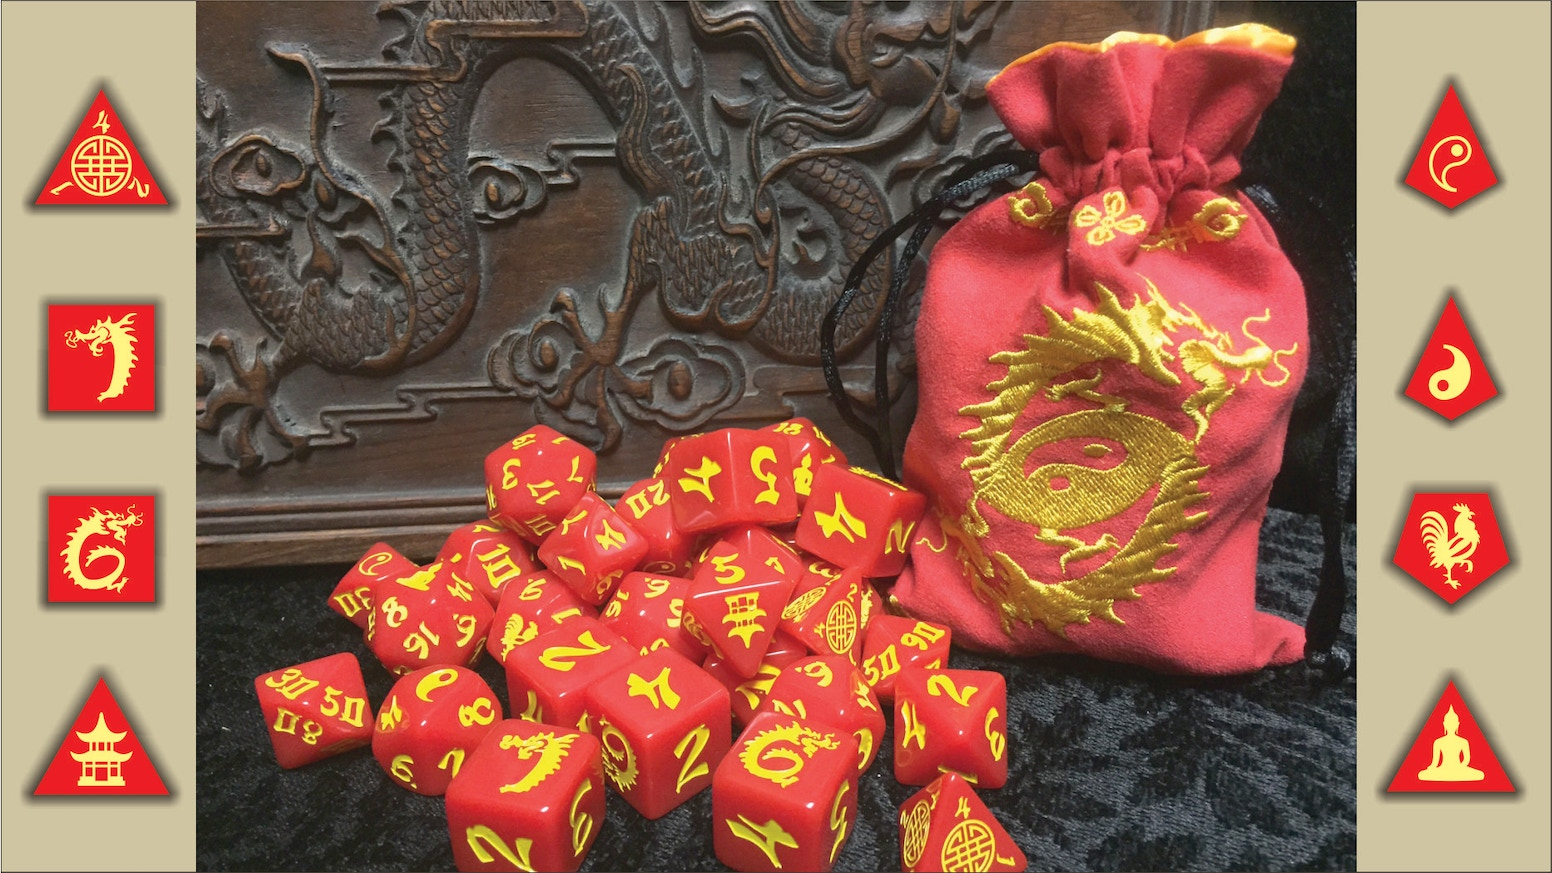 Enter the Double Dragons - our first RPG set! The set features two d6's with opposing dragon designs and an Old World China theme.